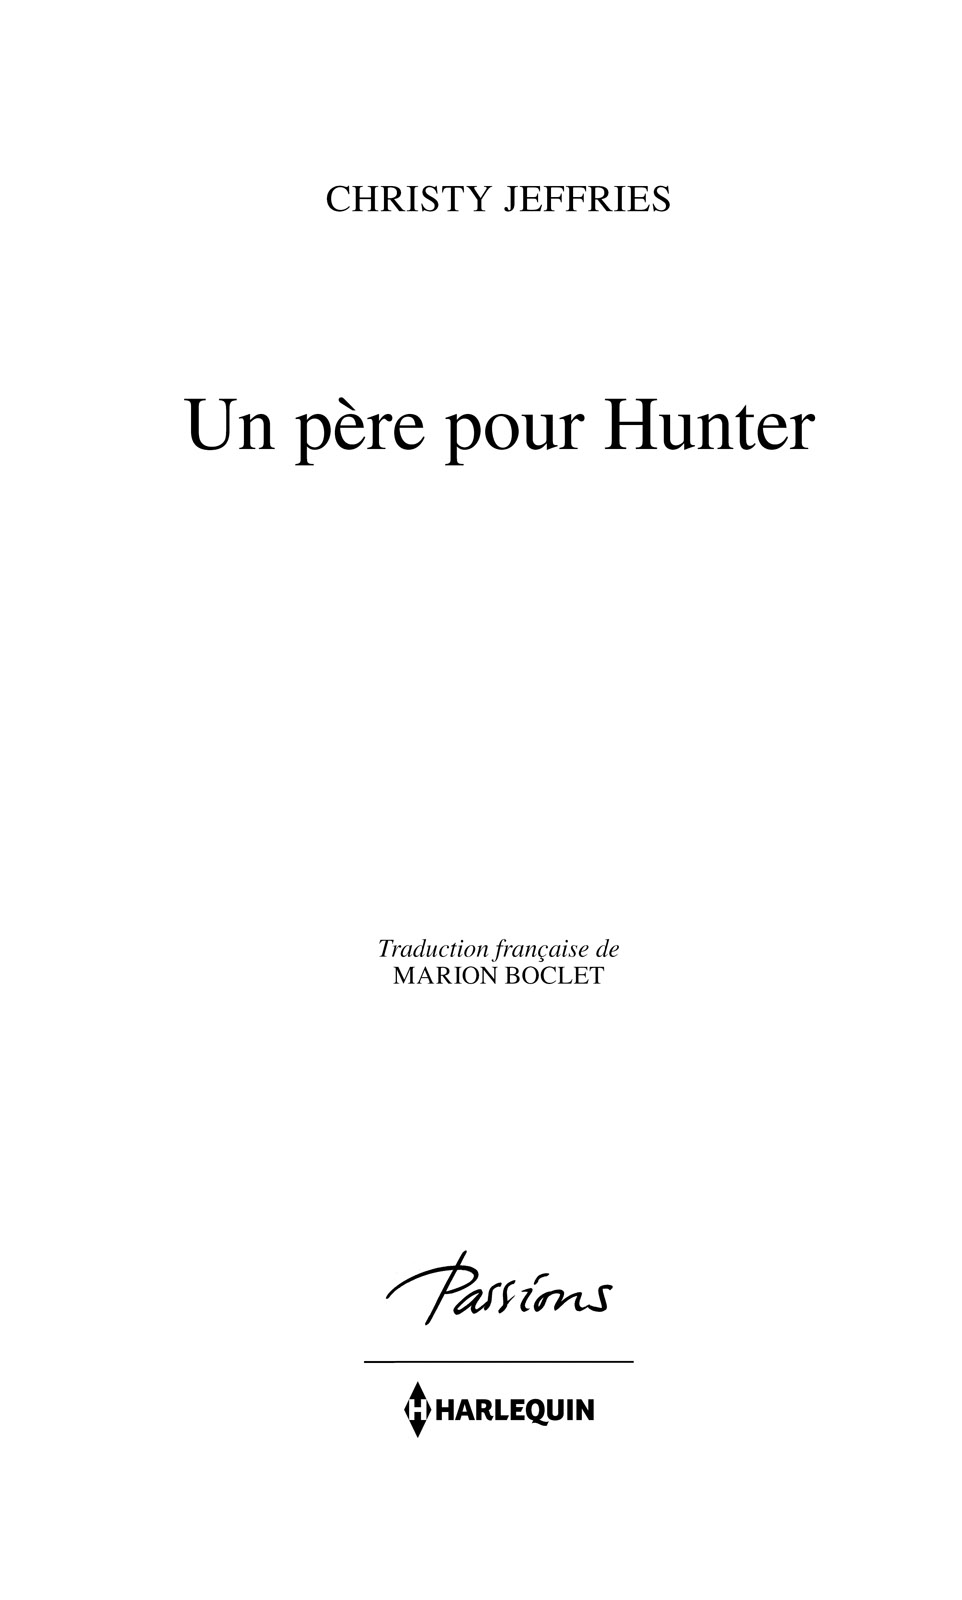 Page de titre : Christy Jeffries, Un père pour Hunter, Harlequin